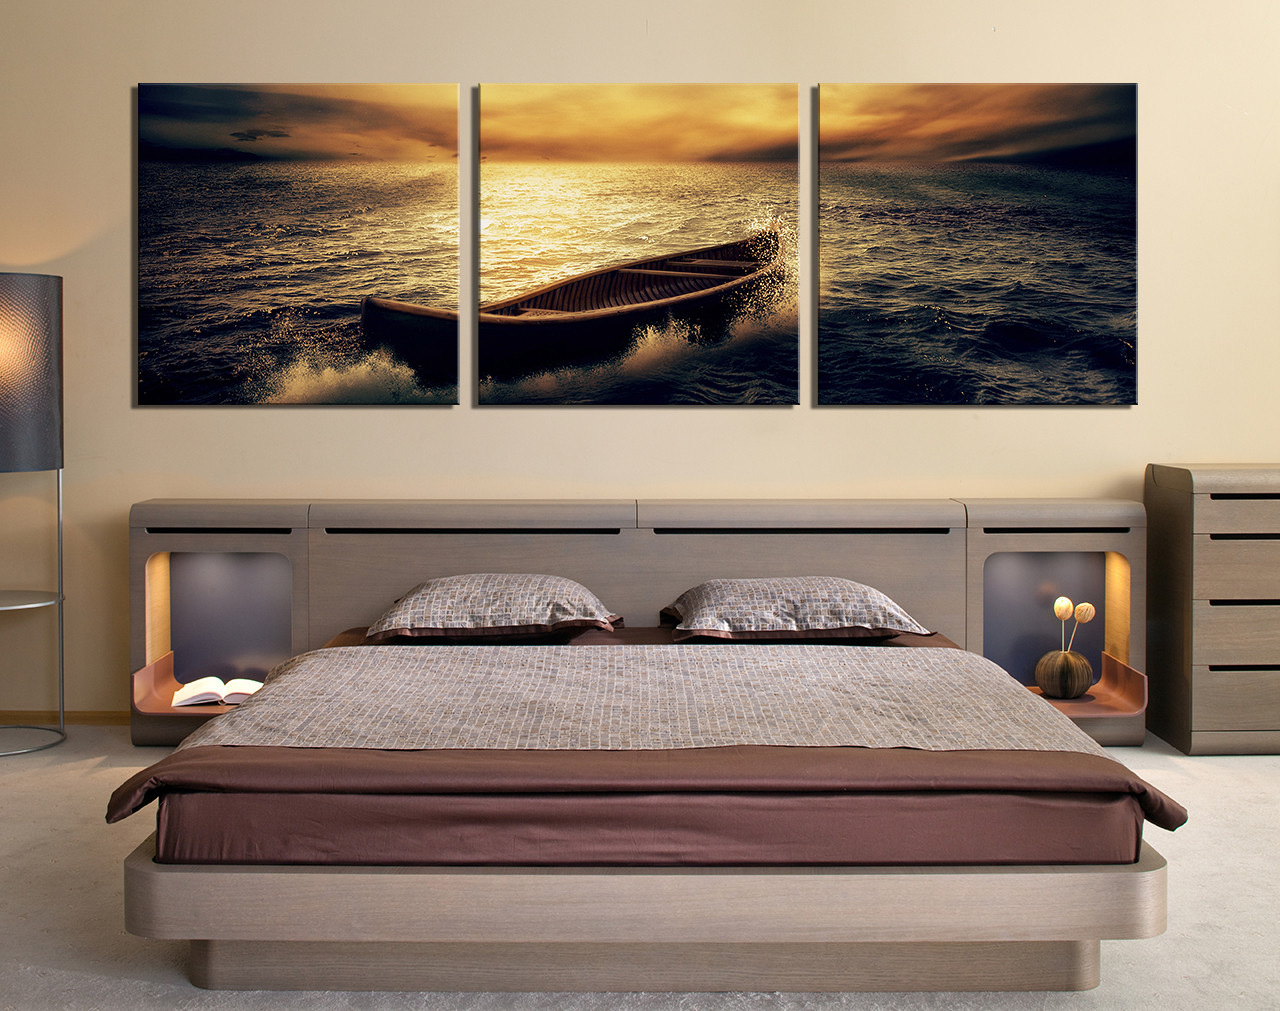 Teal 3 Piece Canvas Photography Yellow Sky Ocean Multi Panel Art Bedroom Huge Canvas Print 45784 Bedroom Wall Art Stickers Bedroom Wall Art Etsy houzz-02 Bedroom Wall Art